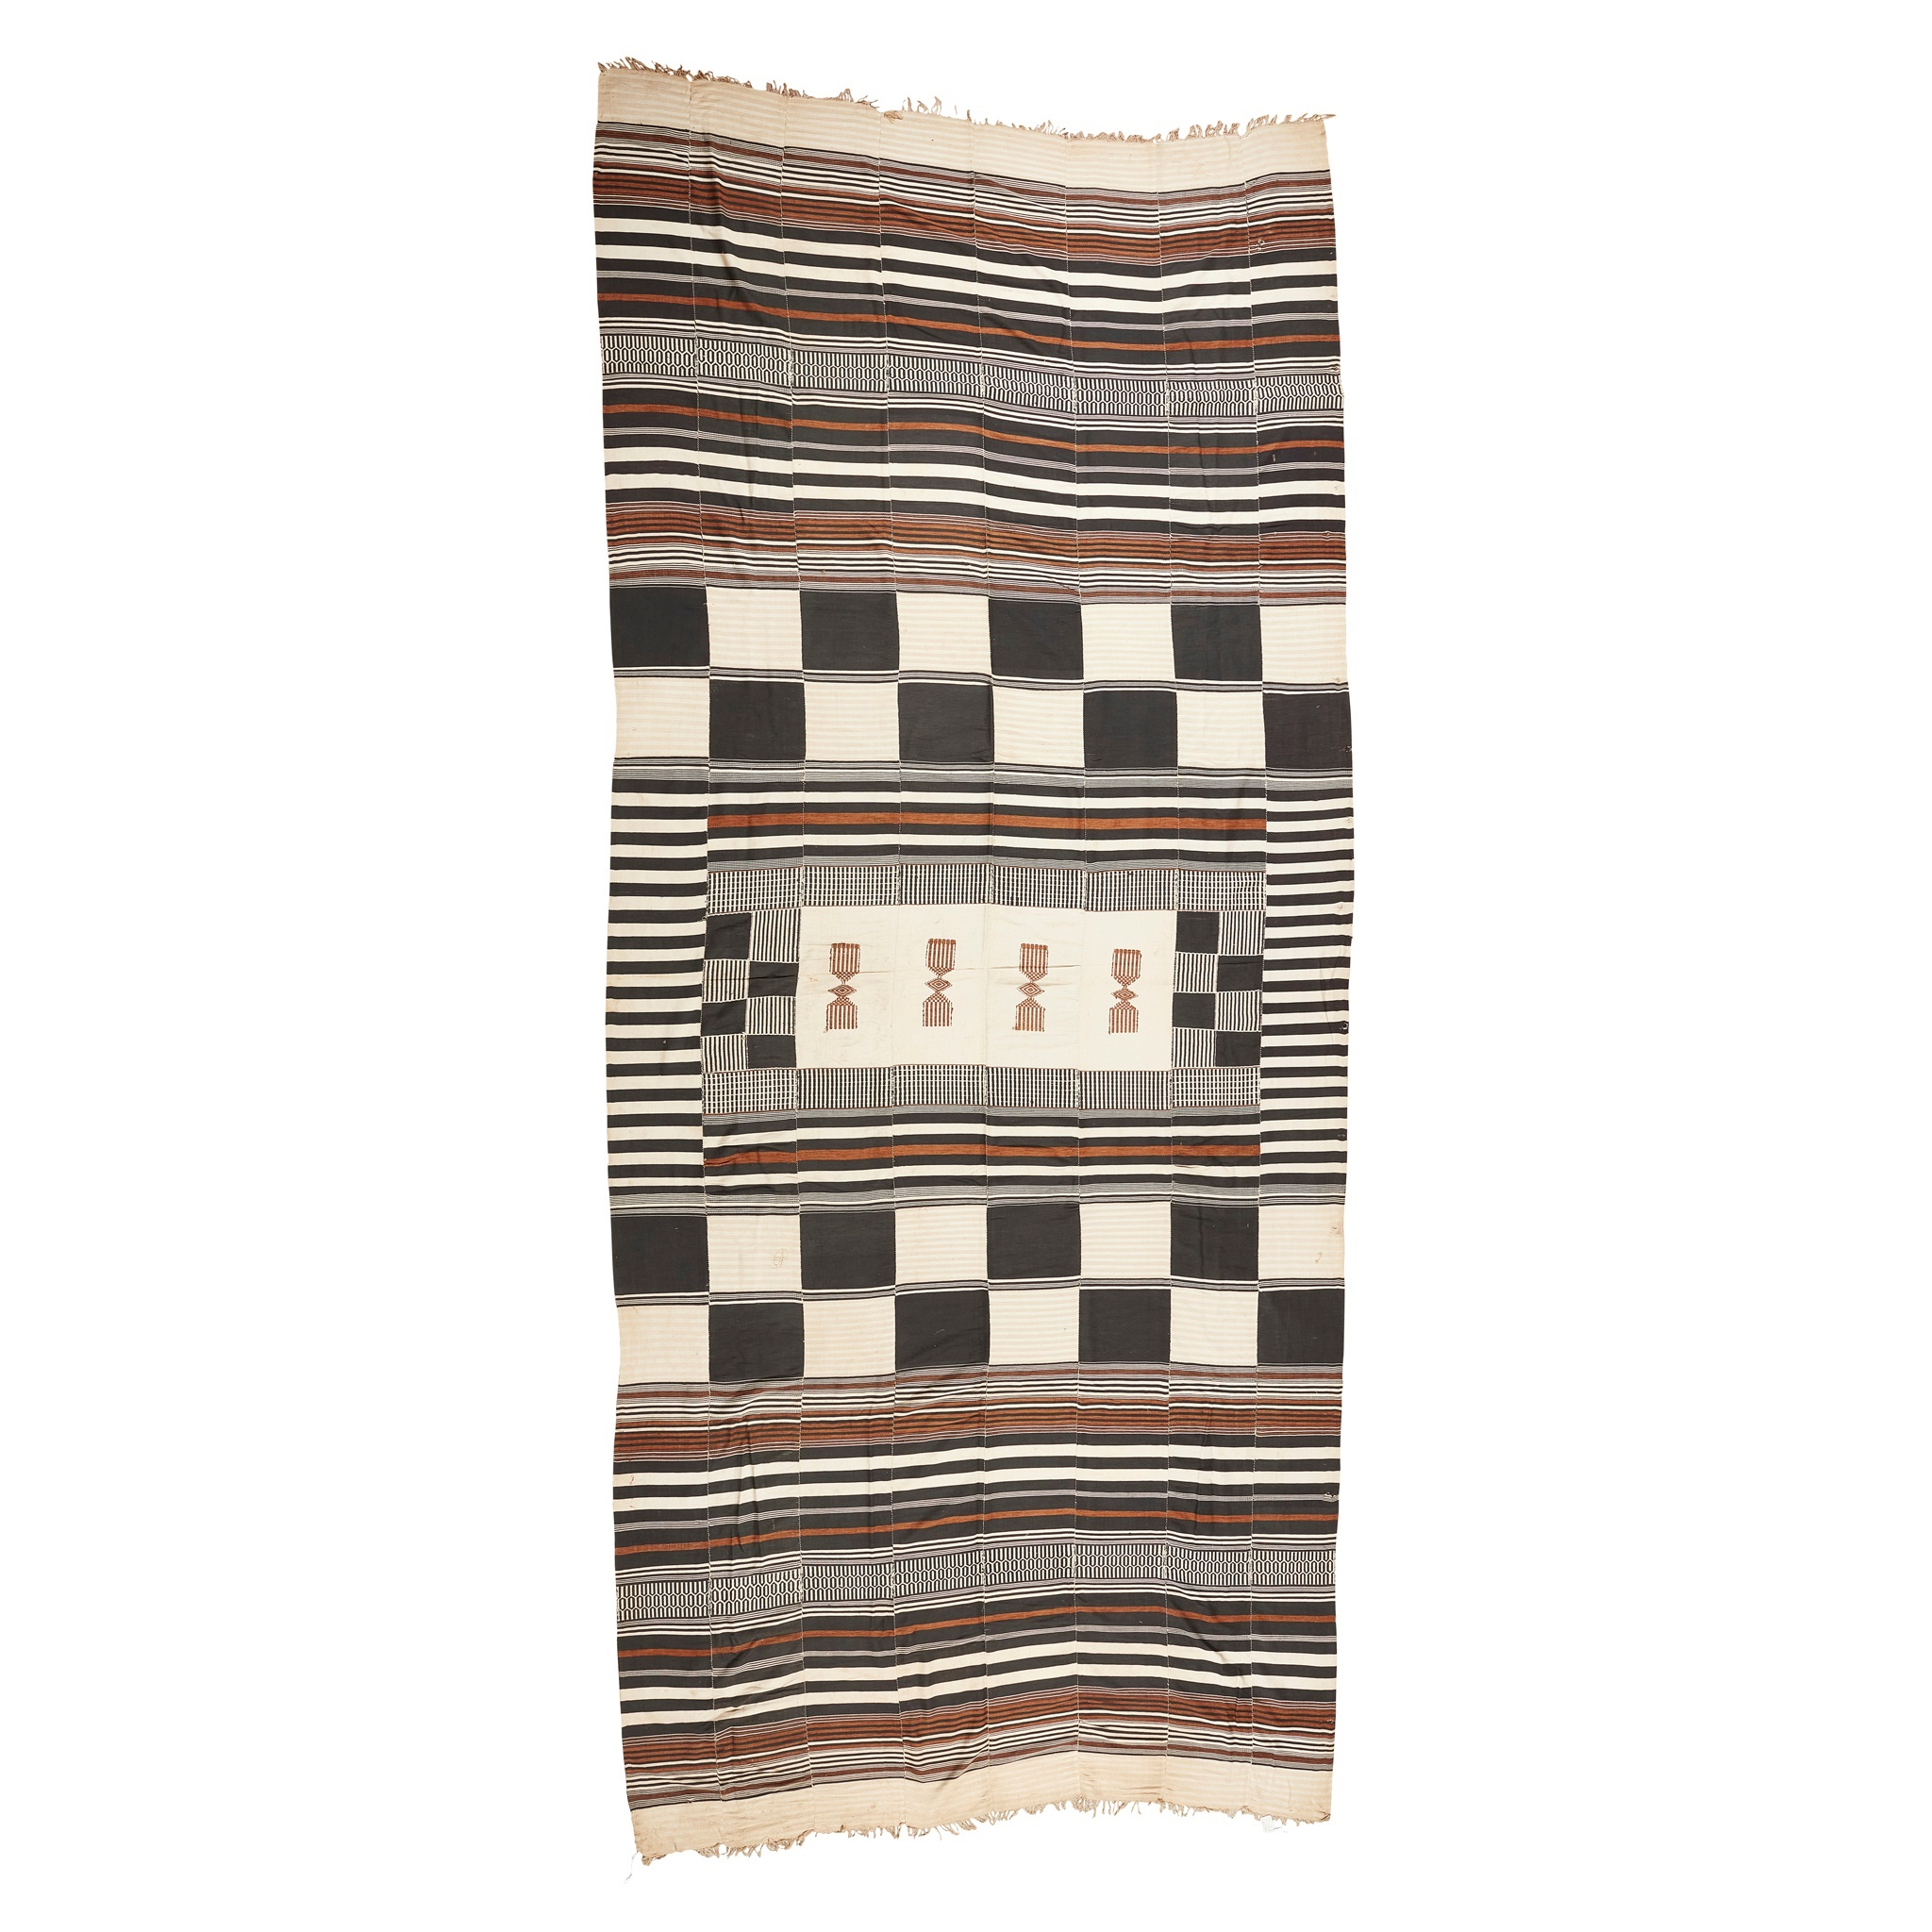 LOT 207 | MENDE CLOTH | SIERRA LEONE